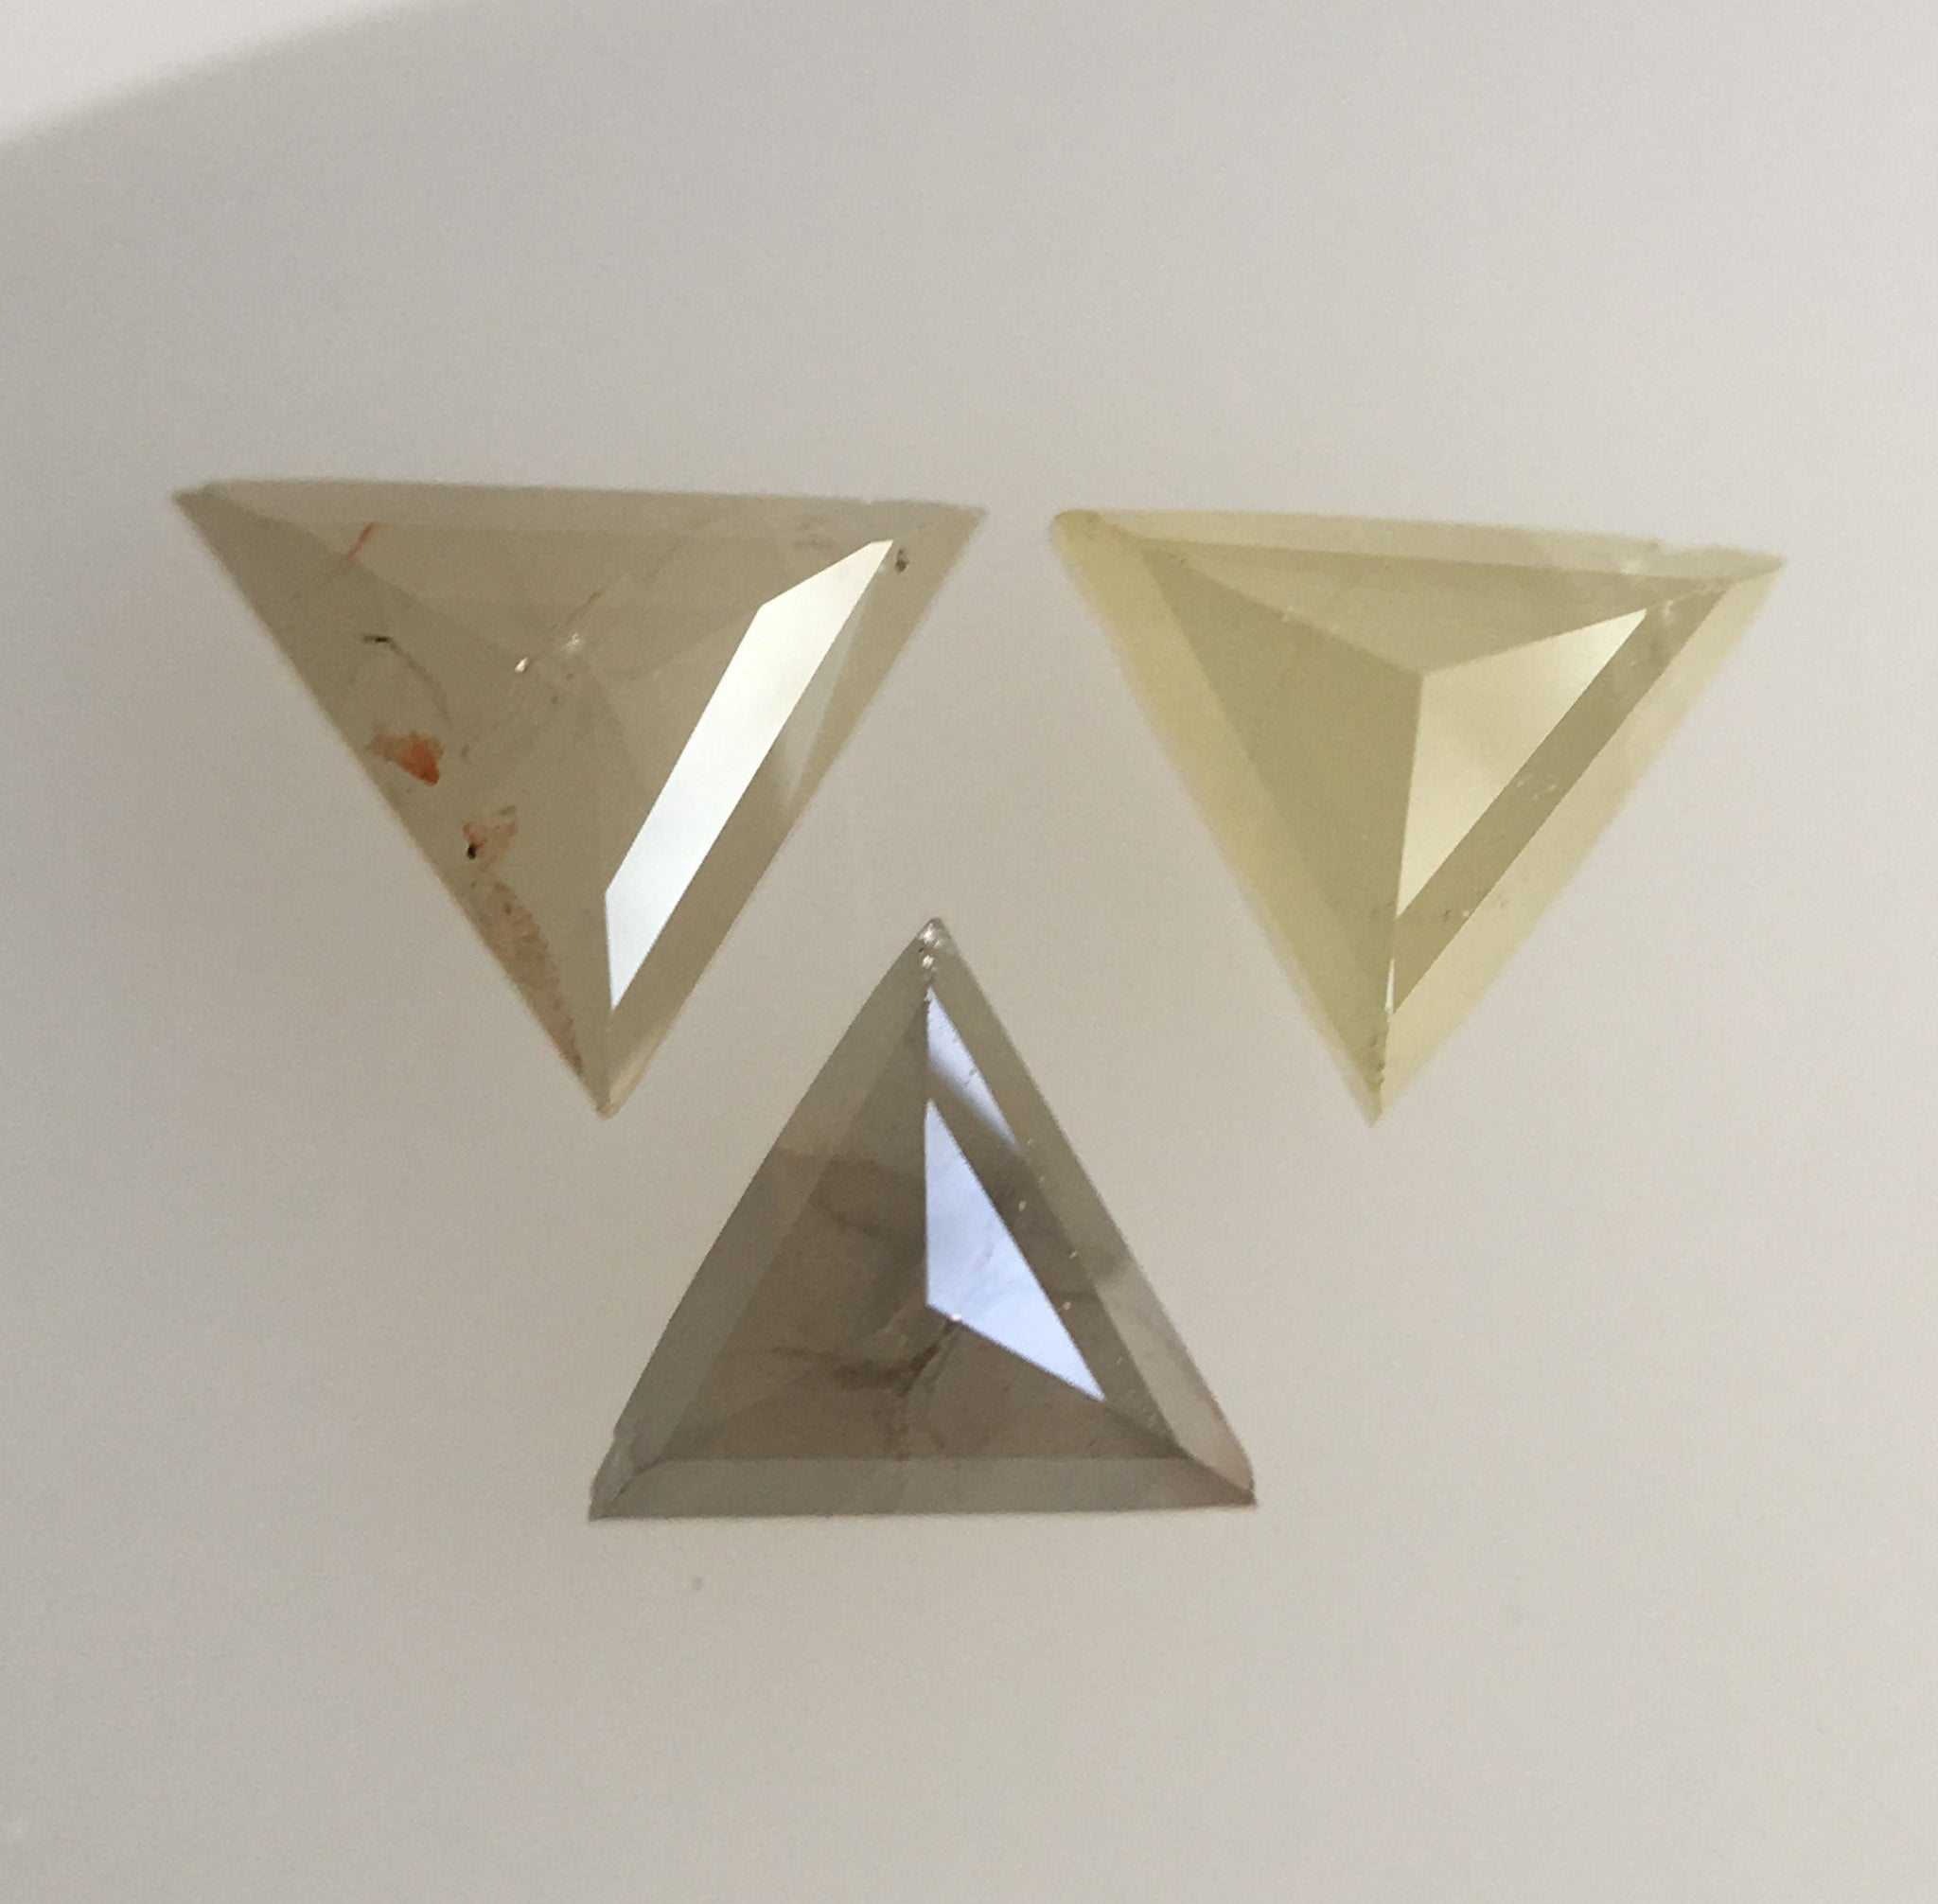 0.43 Ct Natural yellowish grey Color Triangle shape Loose Diamond 3 Pcs, 3.27 to 3.49 mm Excellent Natural Diamond quality SJ41/26 - Amba Jewel